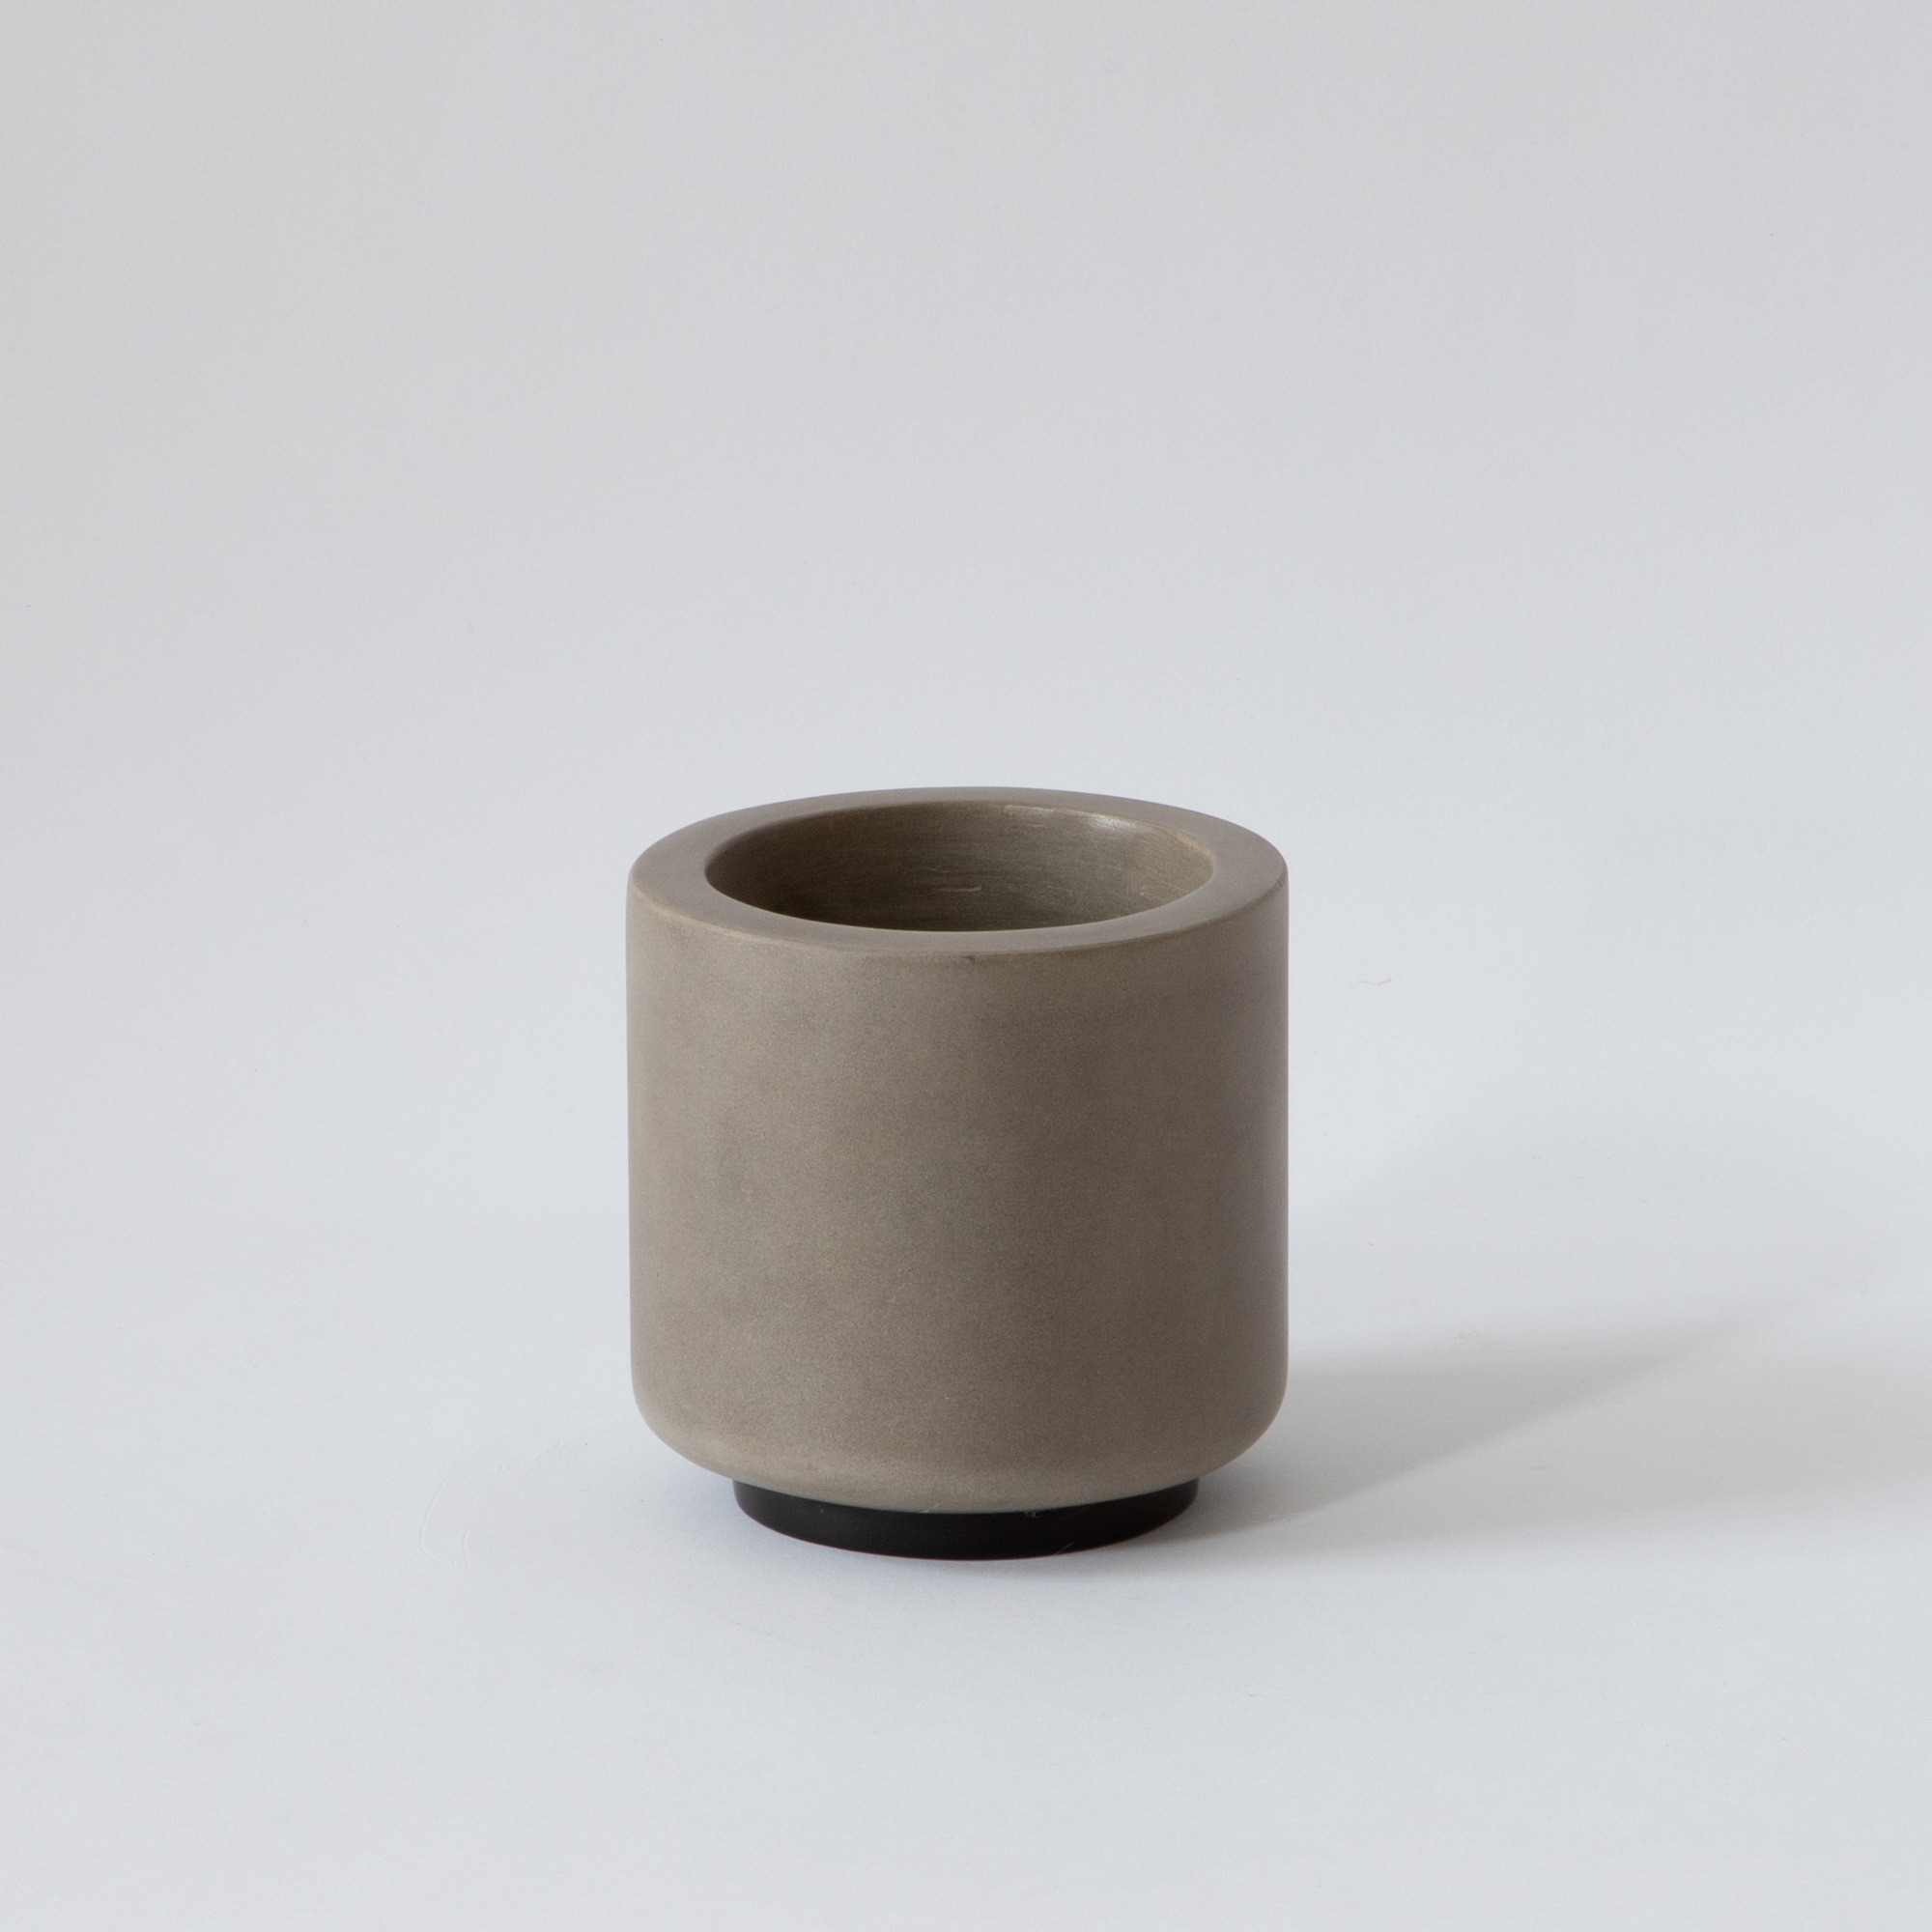 Peru Cylindrical Concrete Table Accessory